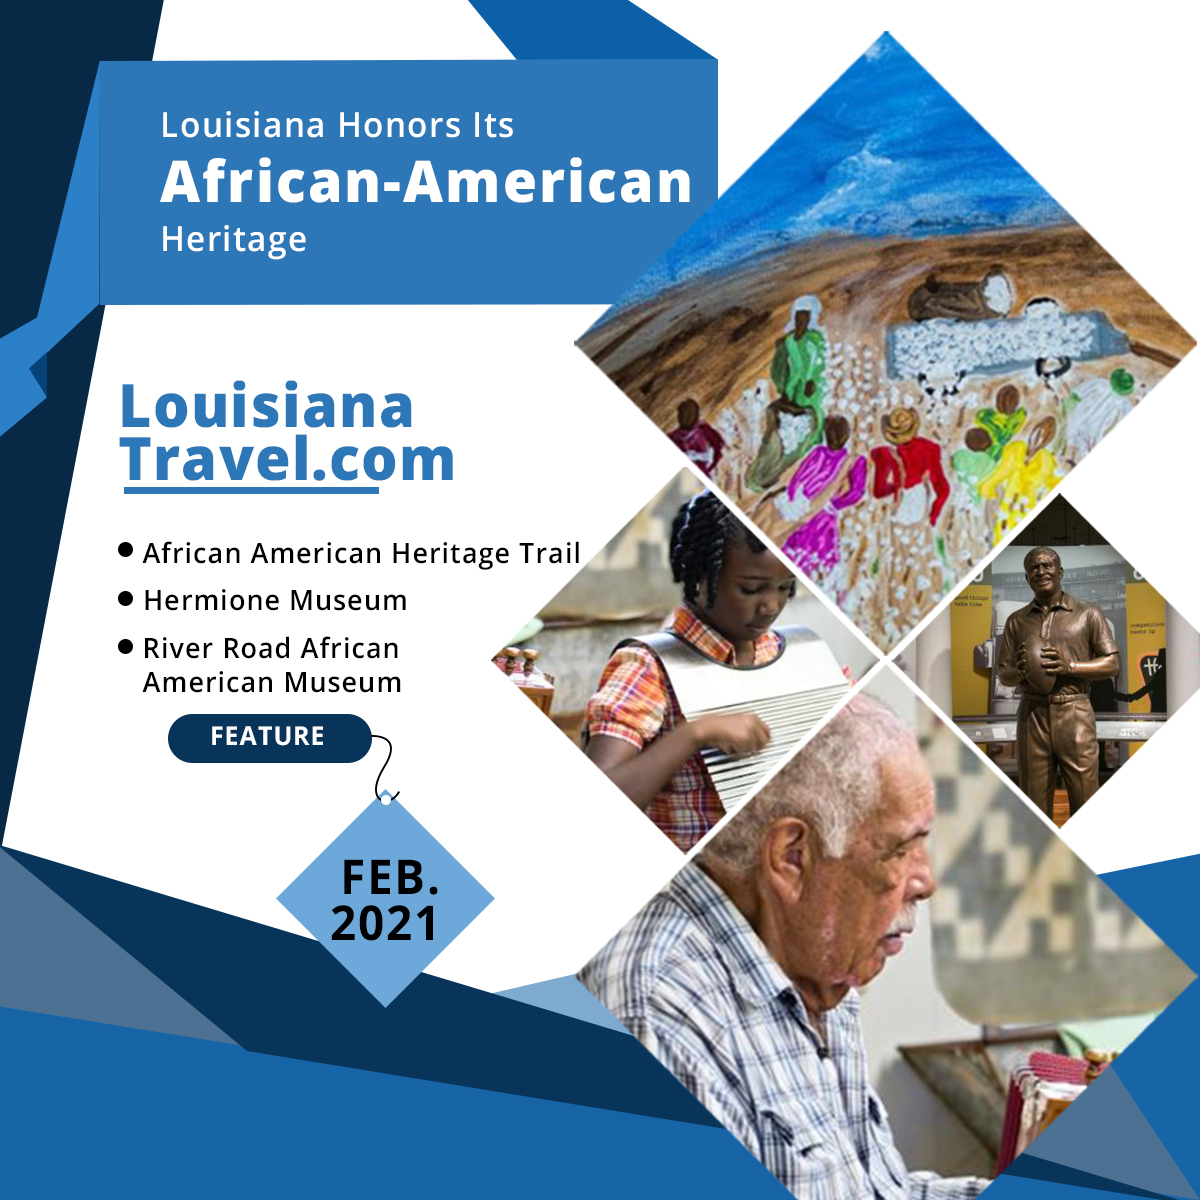 Louisiana Honors Its African-American Heritage